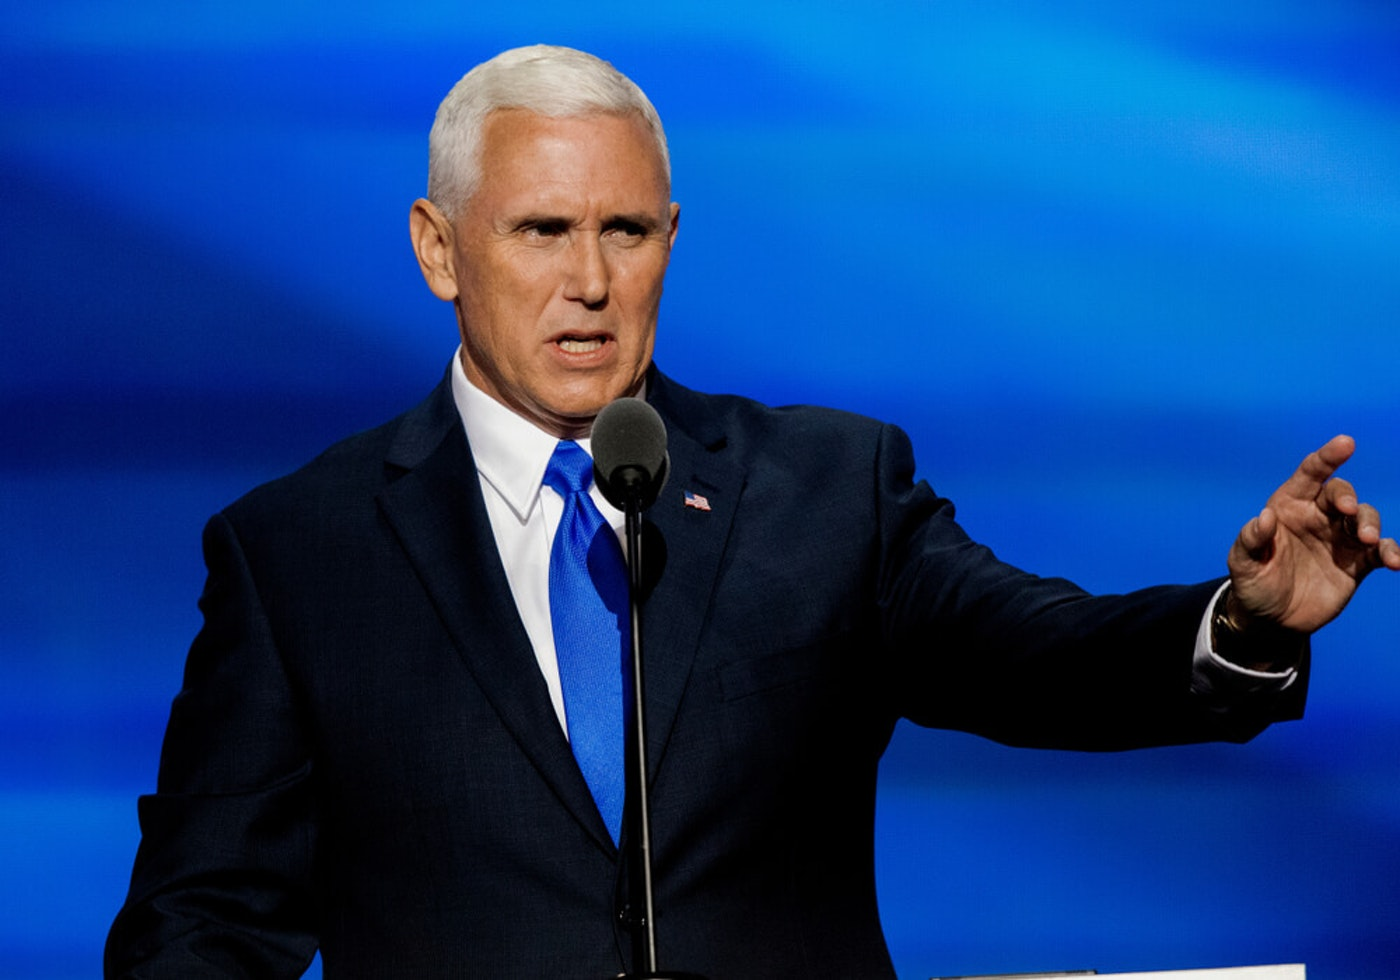 A NC teacher says that, with federal lawmakers stalled on aid for school reopening, Vice President Pence should not be in the state touting a private school right now. (Image via Shutterstock)